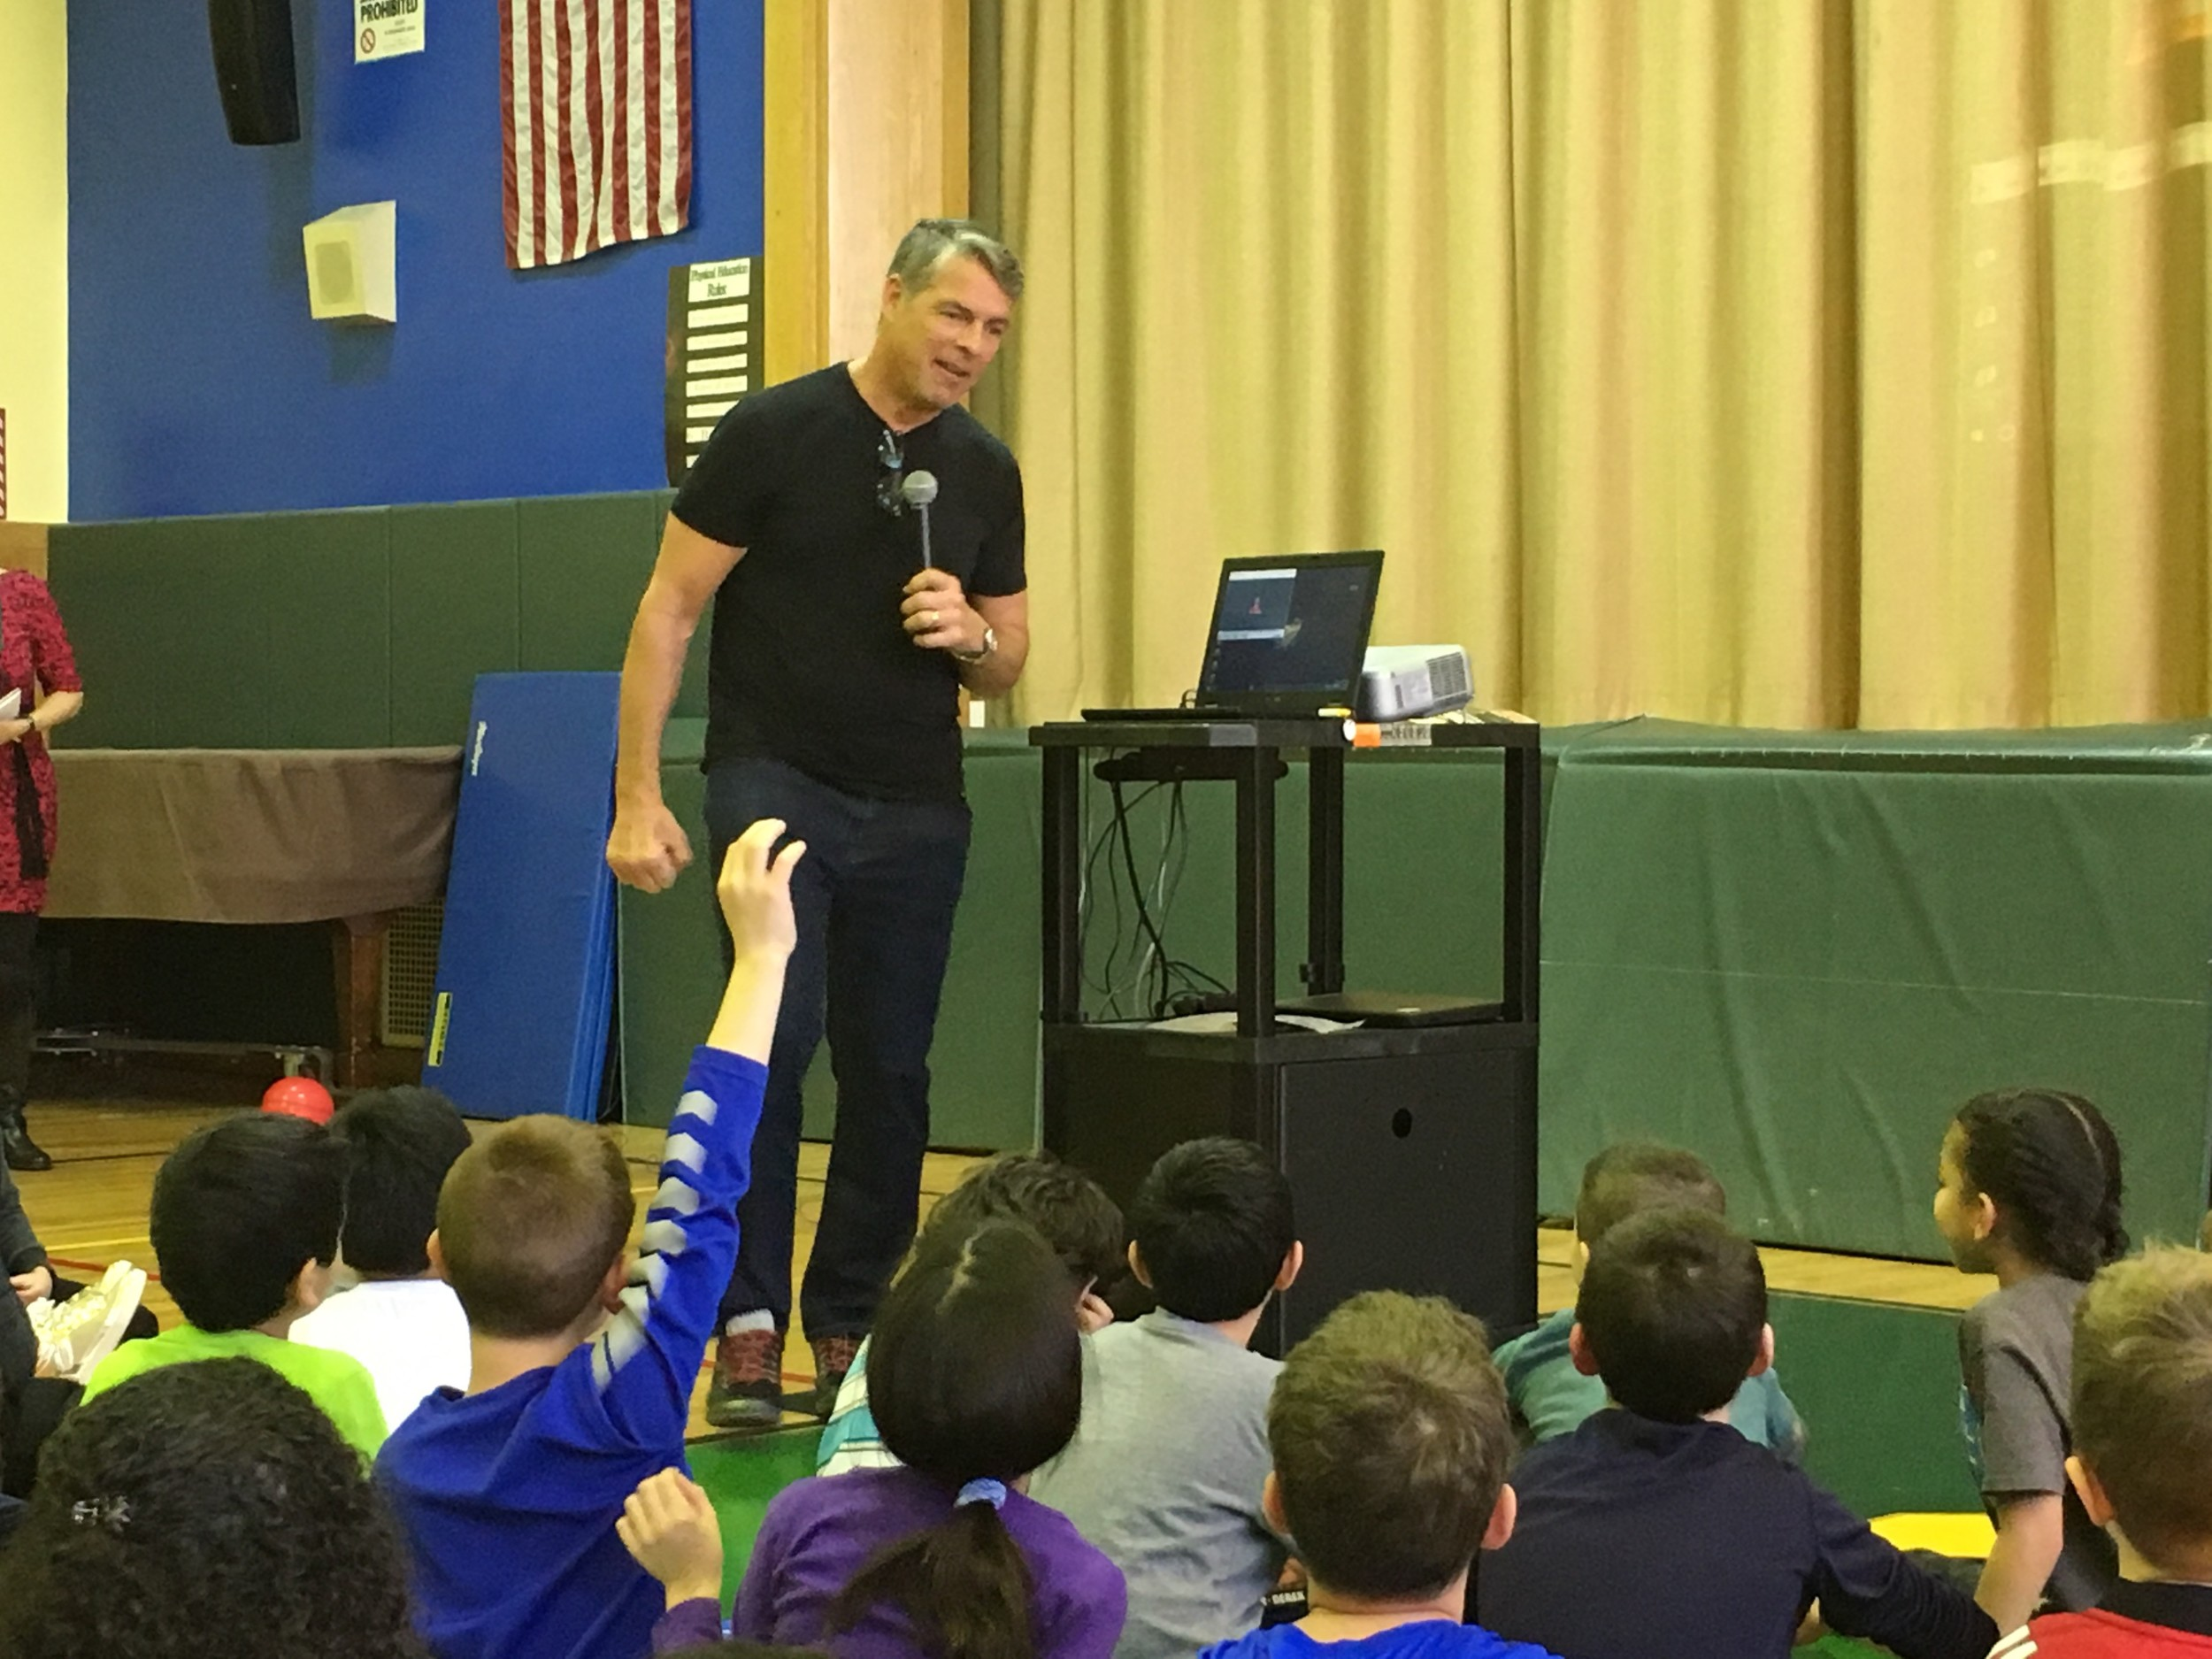 Green told the students about the importance of reading